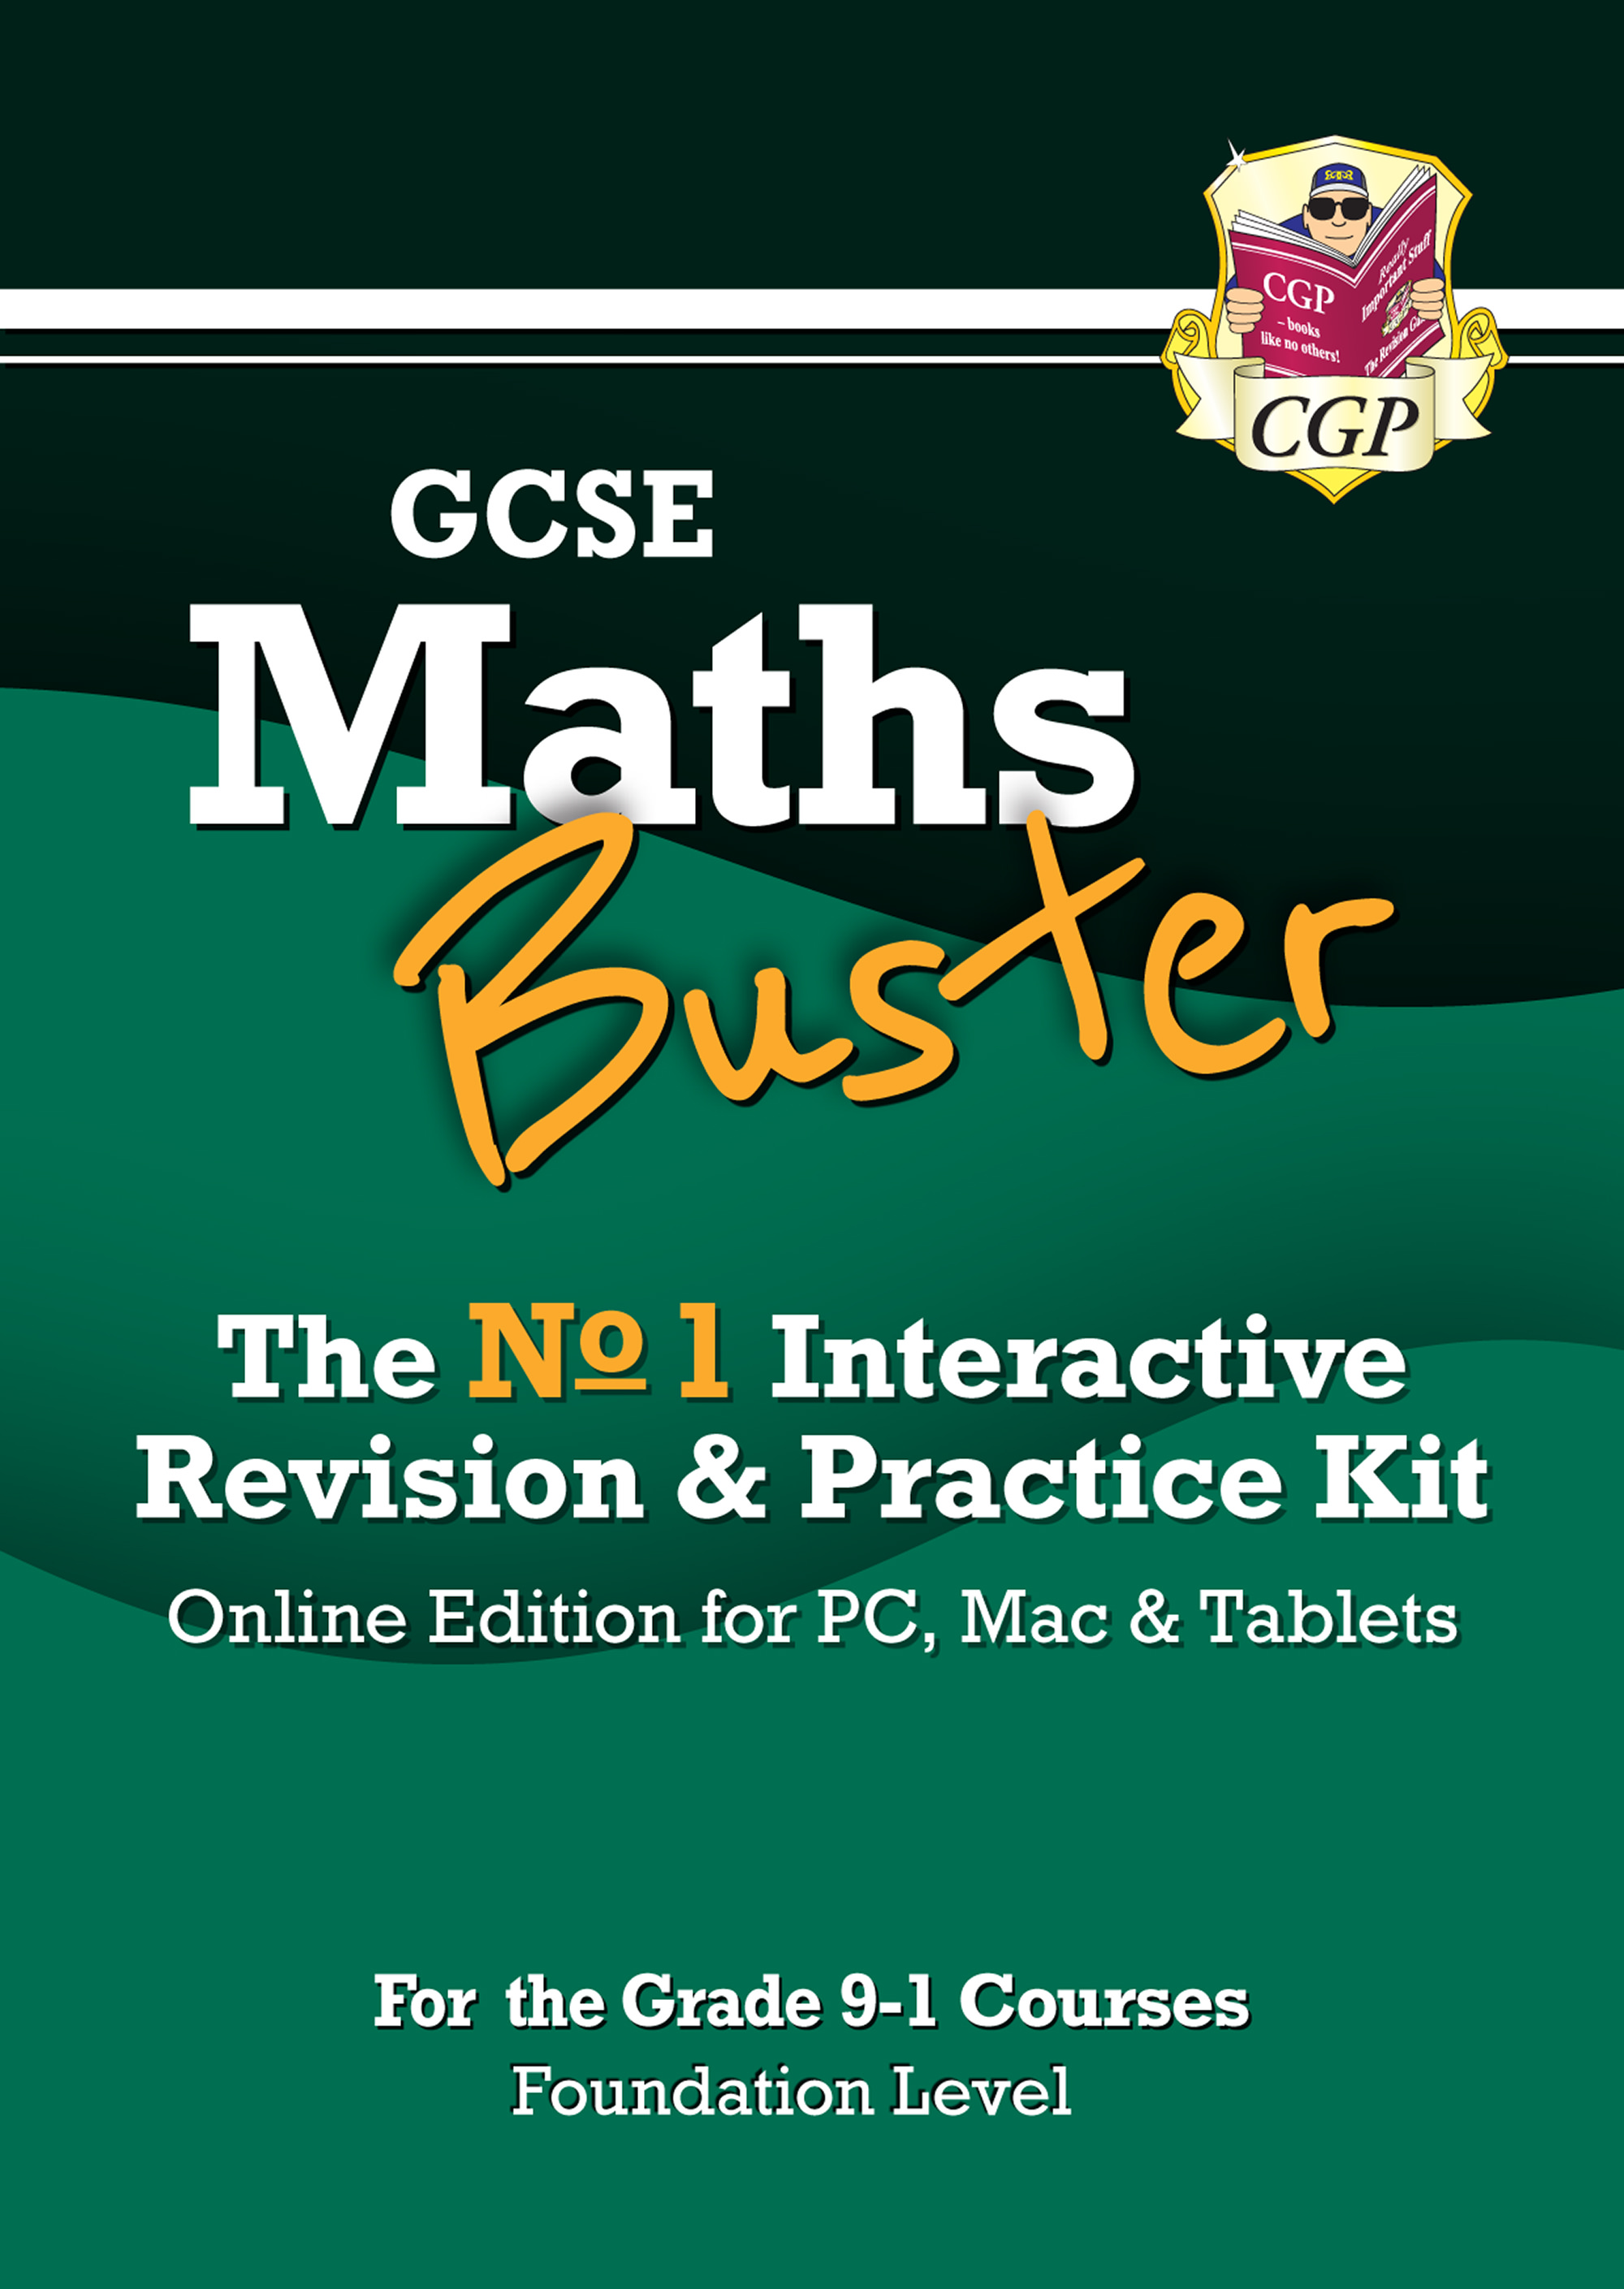 42MBFG3 - MathsBuster: GCSE Maths Interactive Revision (Grade 9-1 Course) Foundation - Online Editio